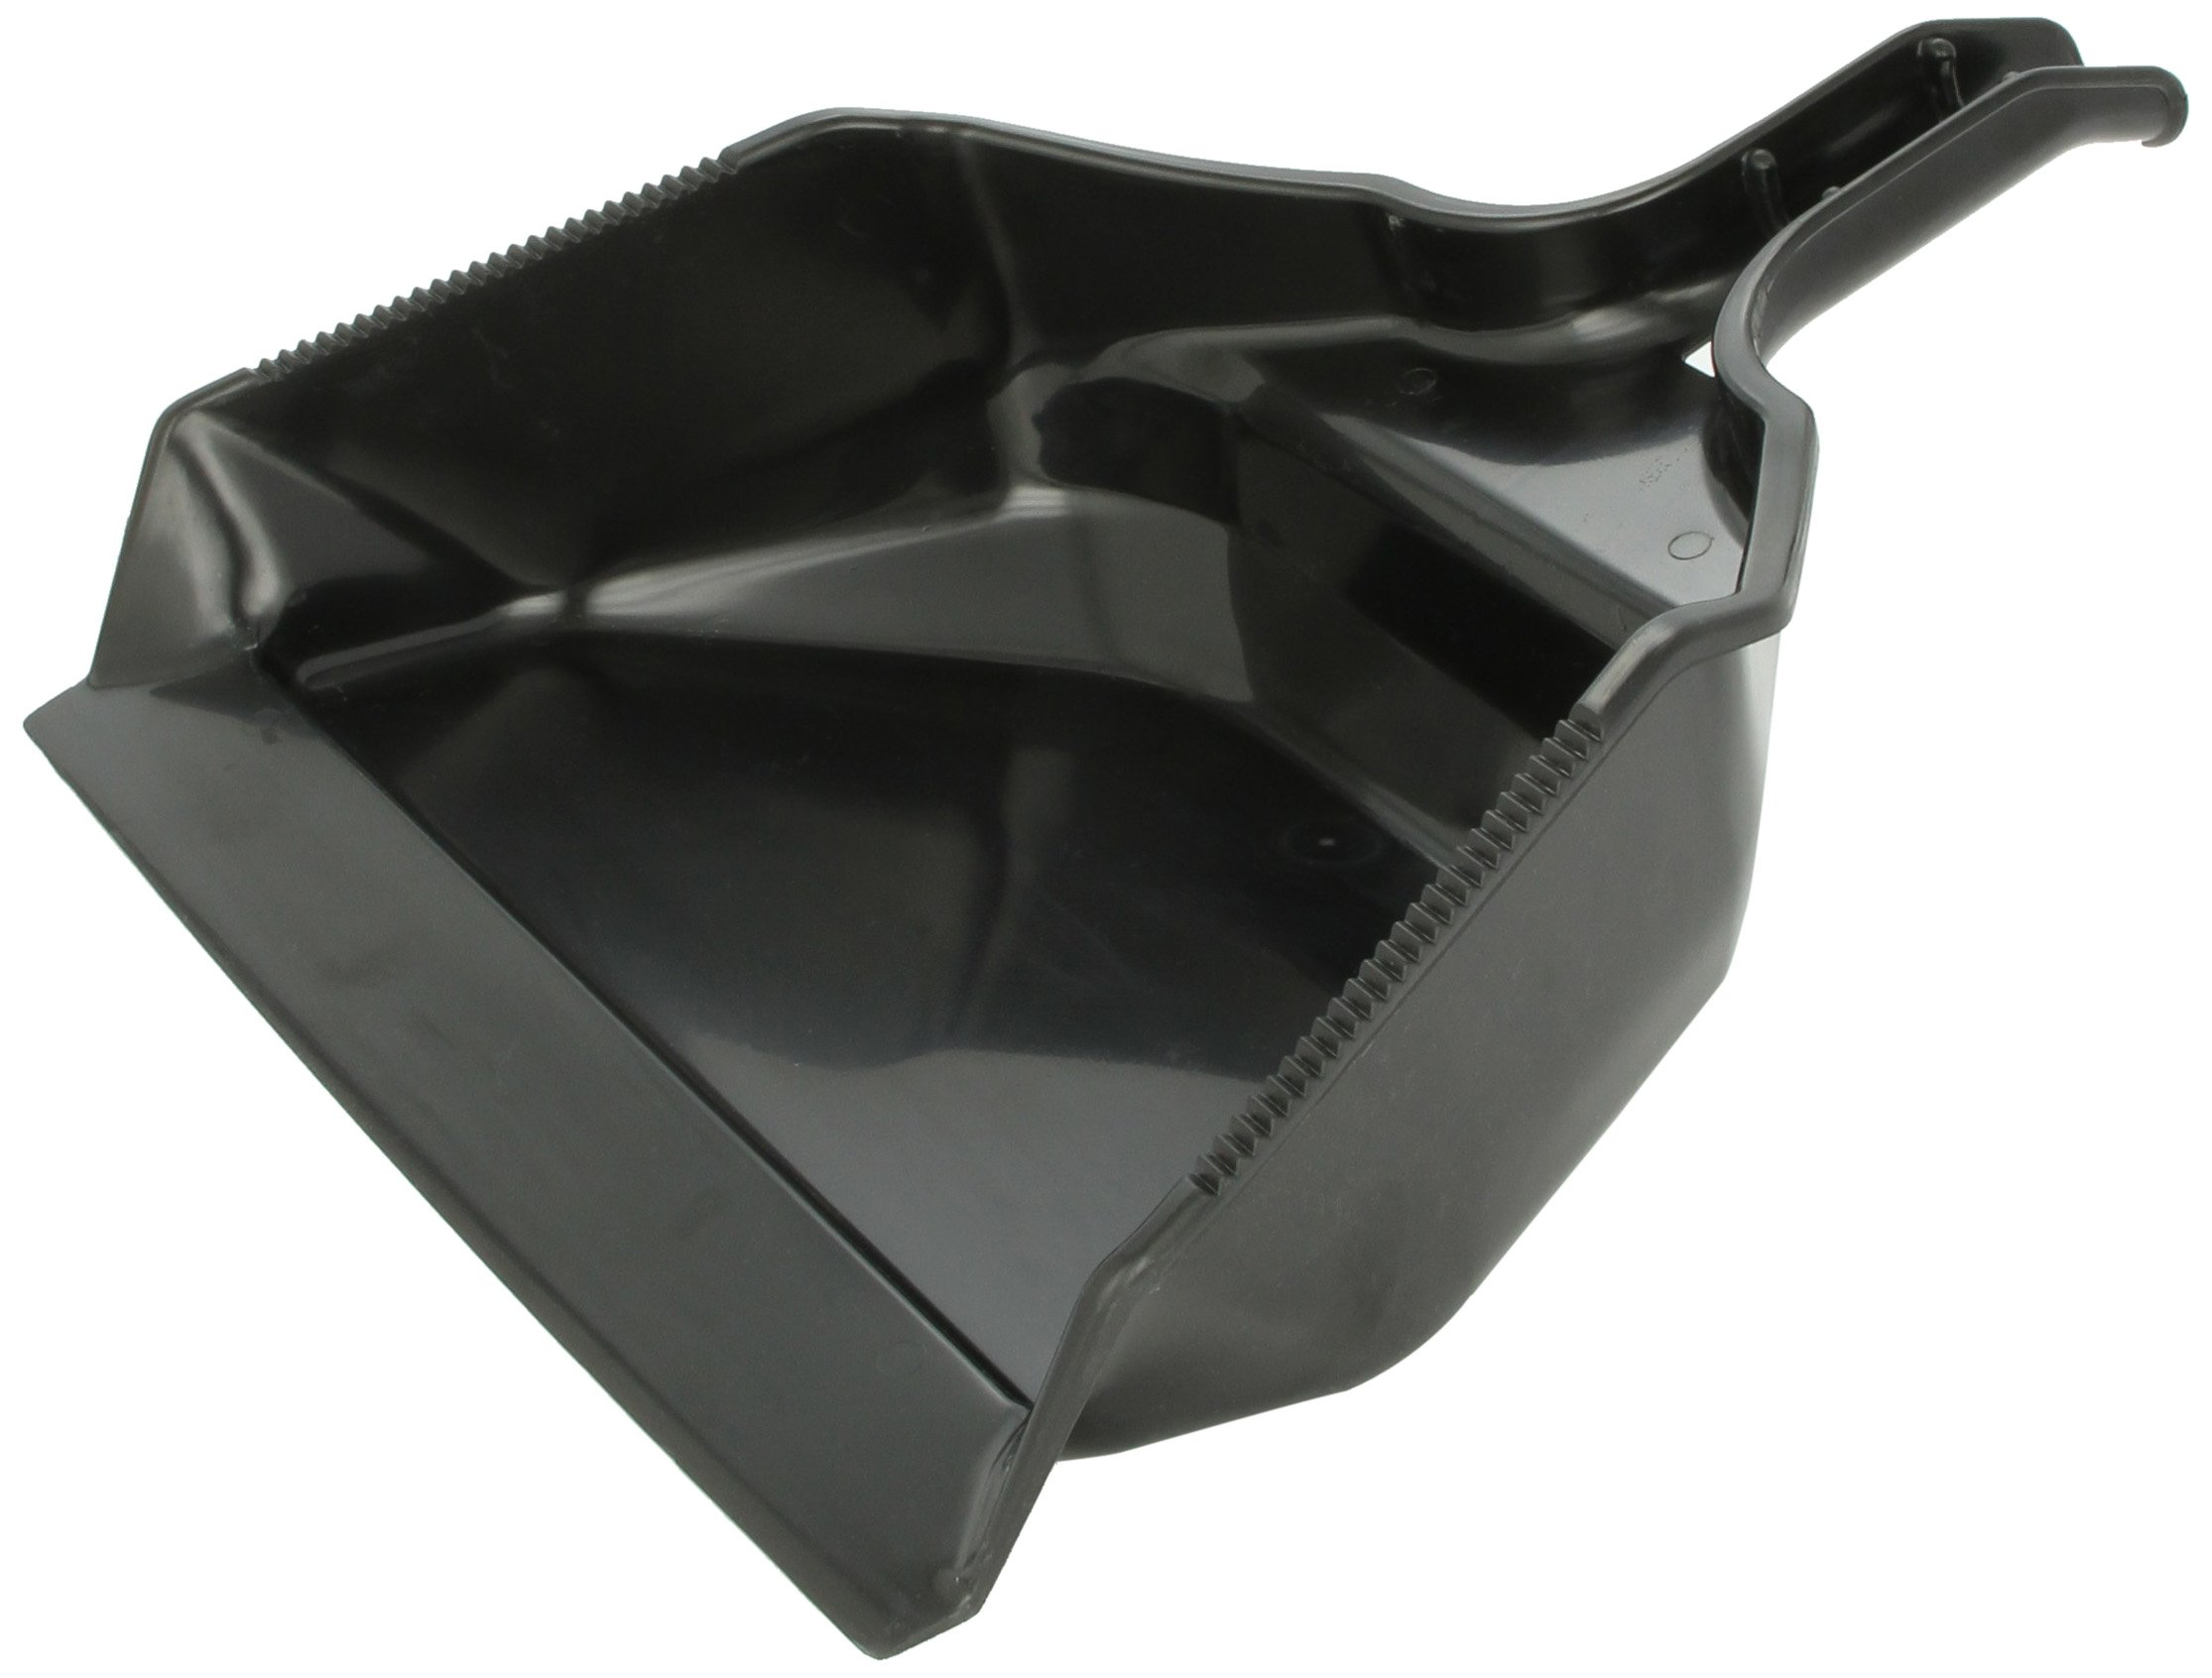 Rubbermaid Commercial Heavy Duty Dust Pan, Extra Large